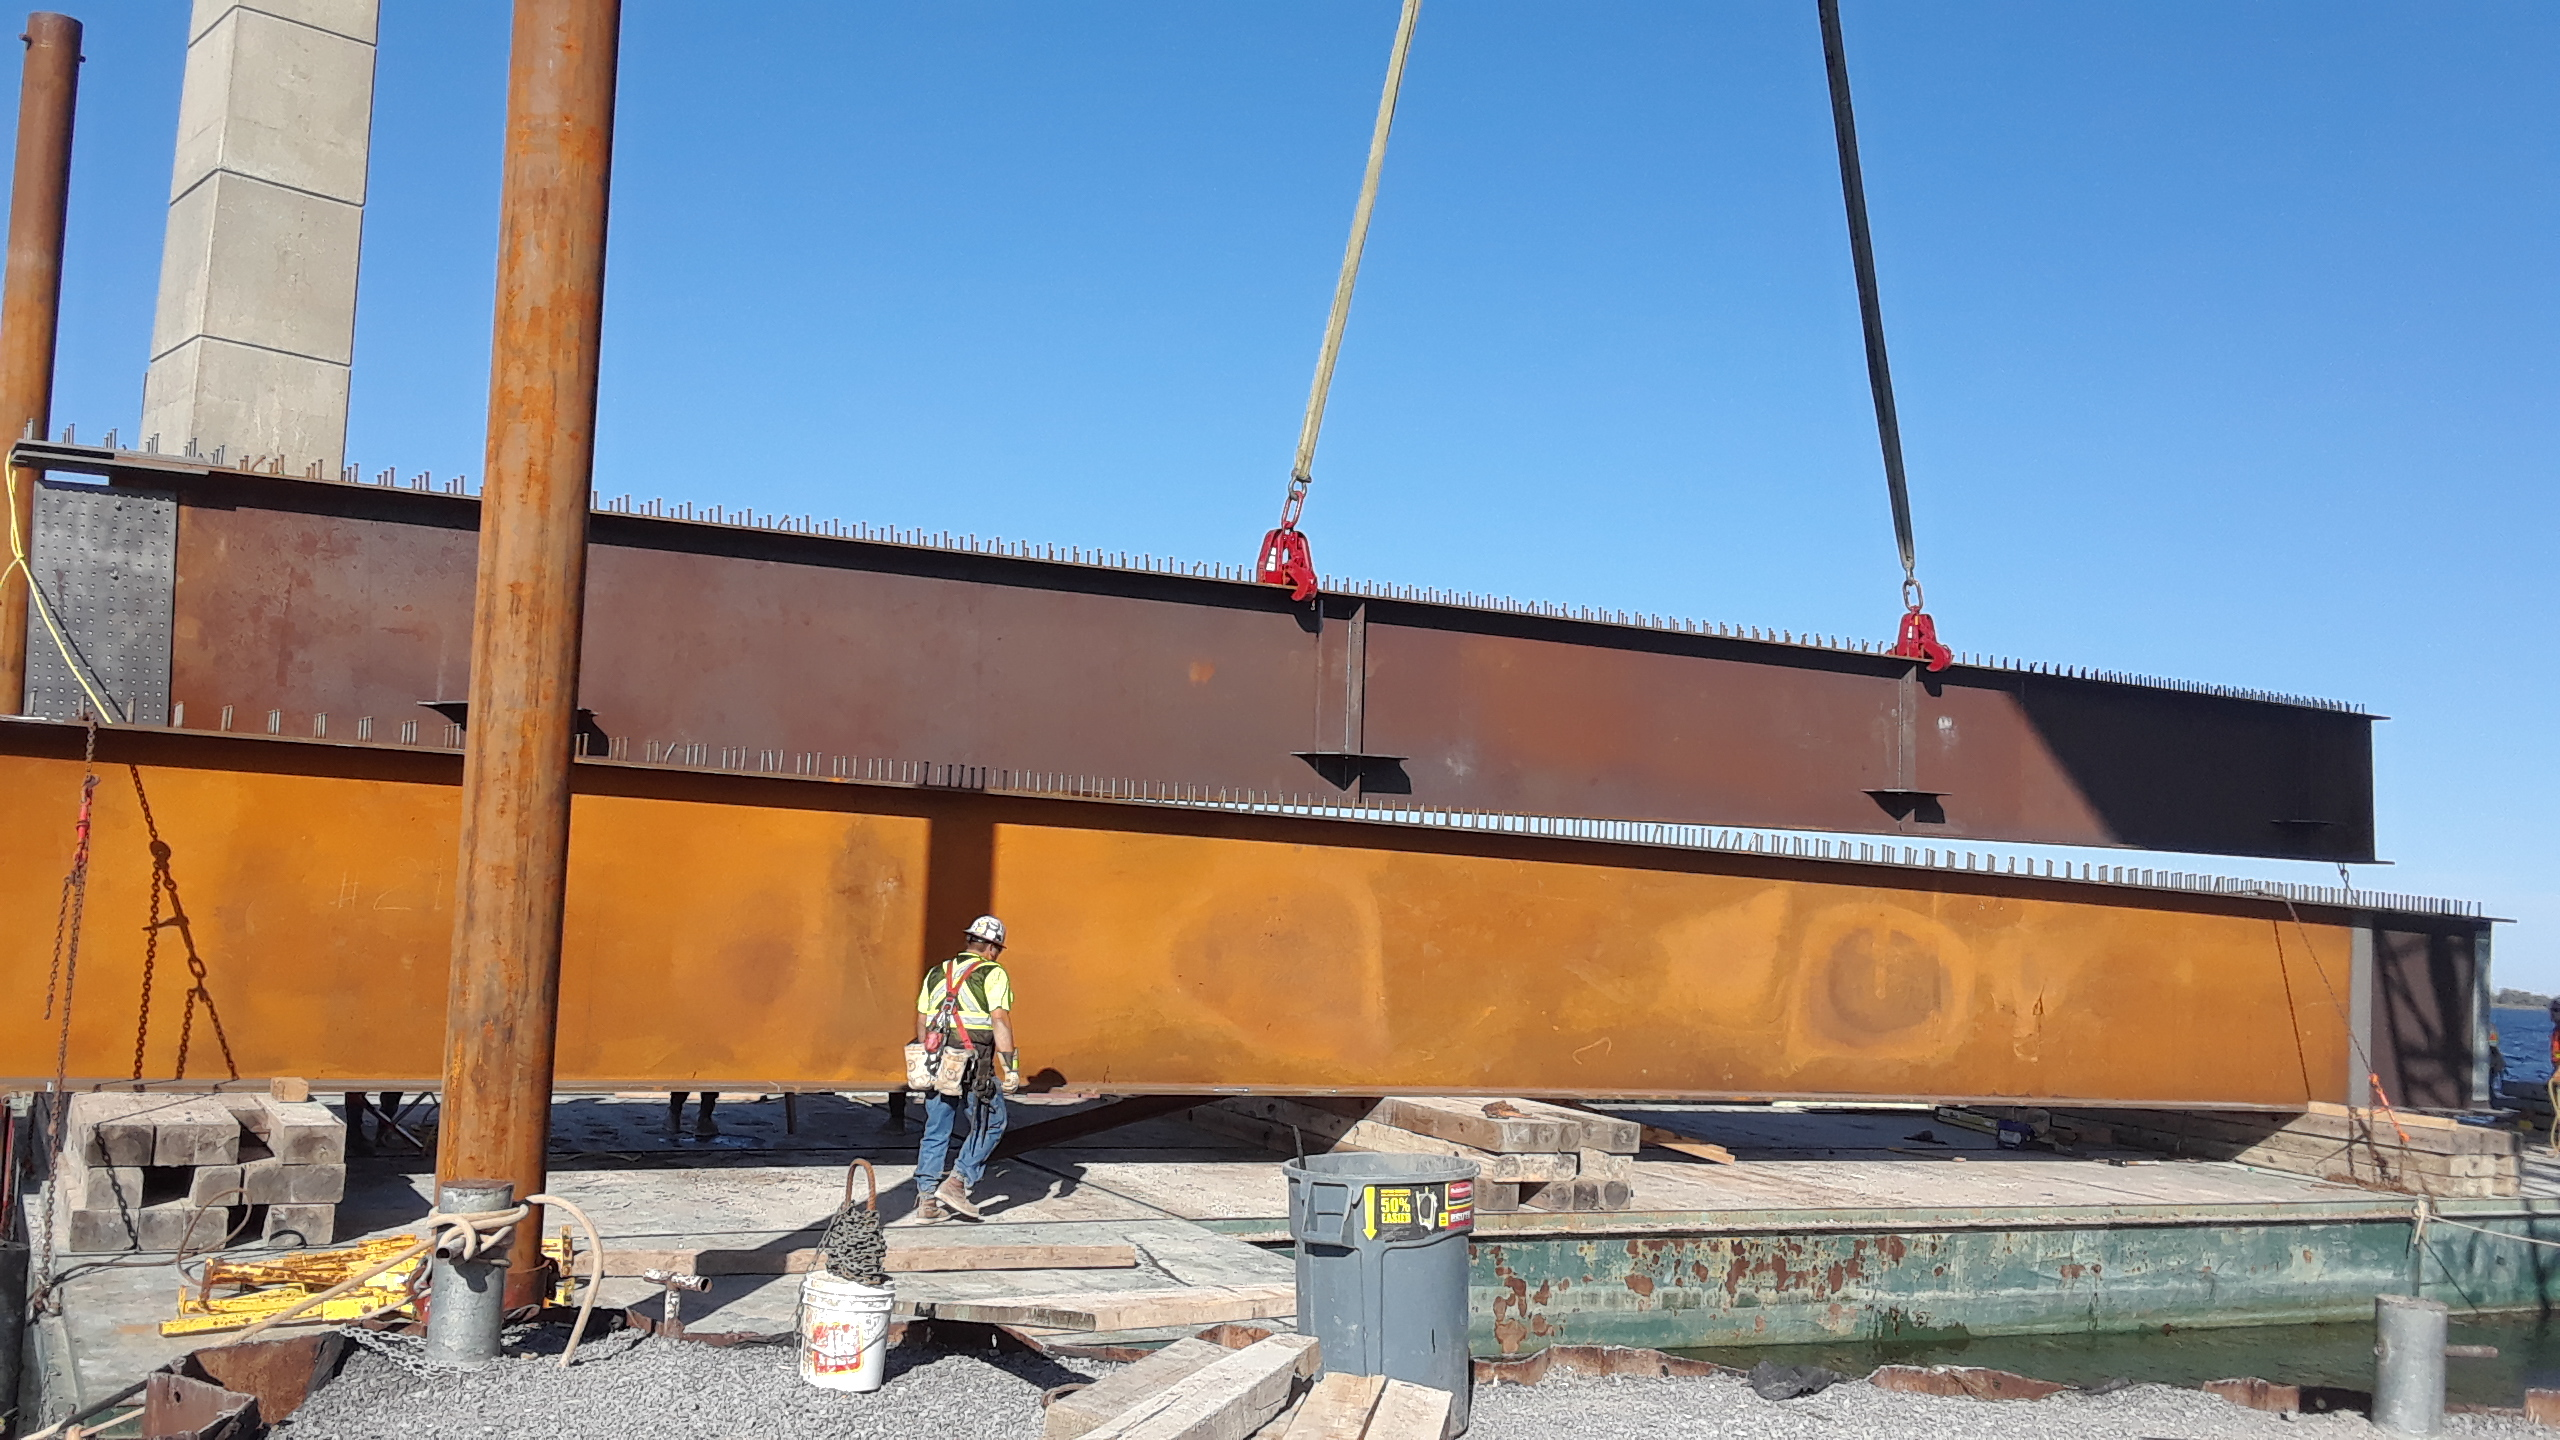 Second section of the girder being moved into place to be assembled